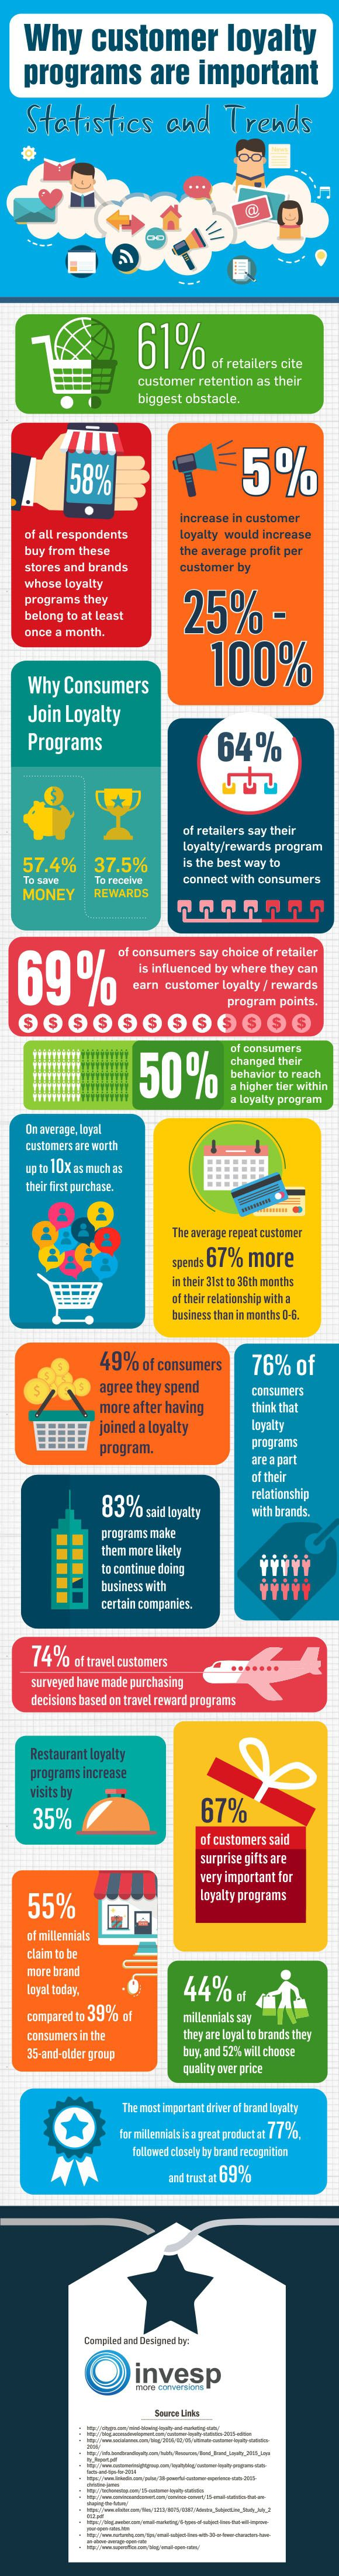 Why Customer Loyalty Programs Are Important For Your Business [Infographic]